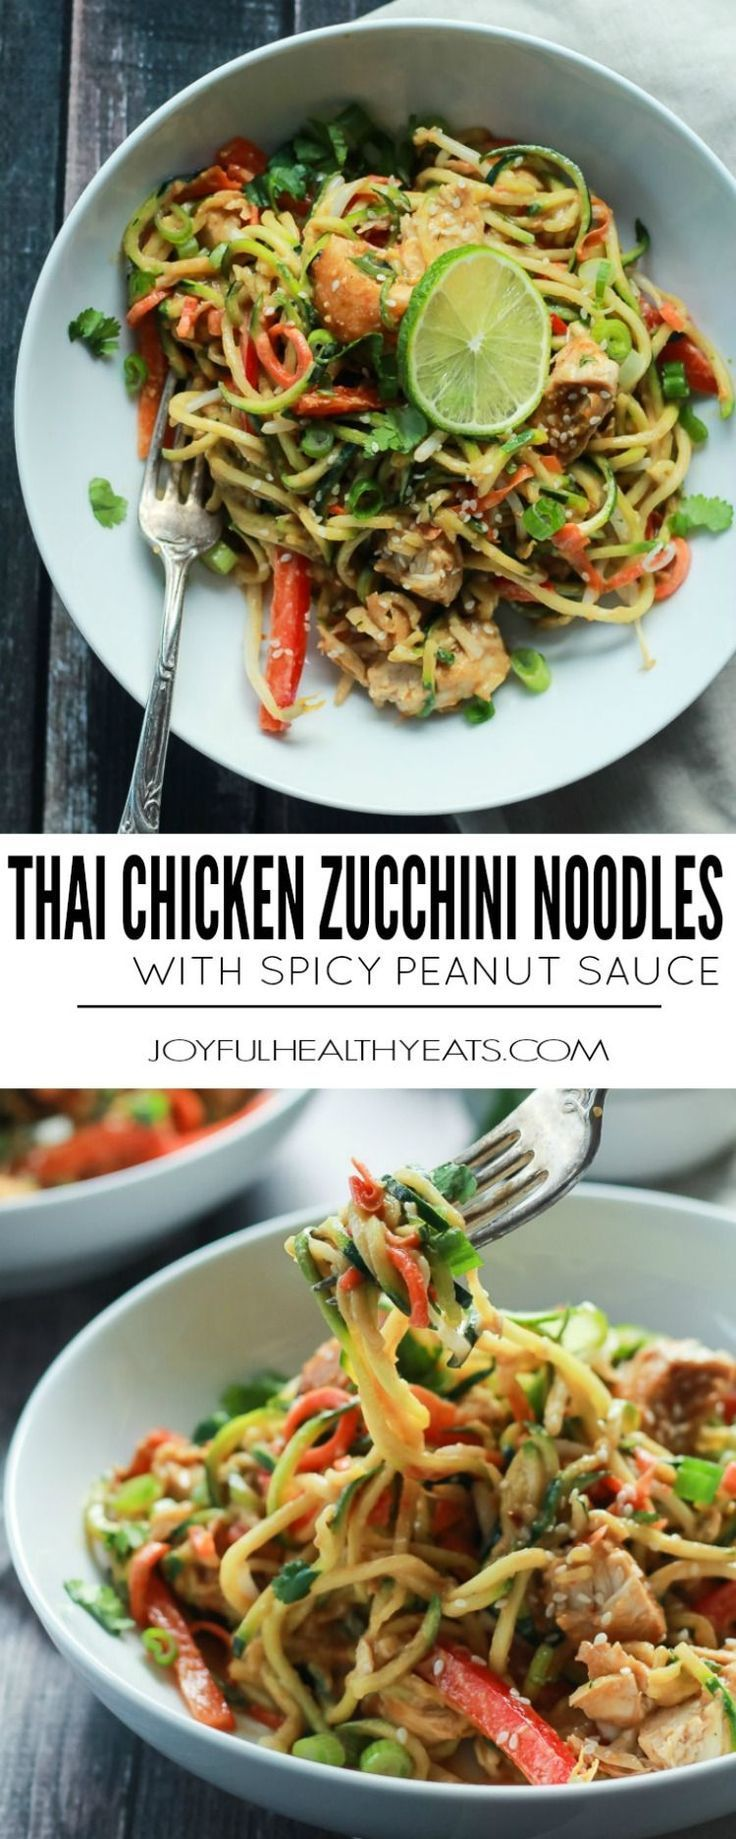 Zoodles are the star in this easy 15 minute Thai Chicken Zucchini Noodles recipe with Spicy Peanut Sauce only 363 calories and packed with a punch of flavor! | joyfulhealthyeats... #paleo #glutenfree